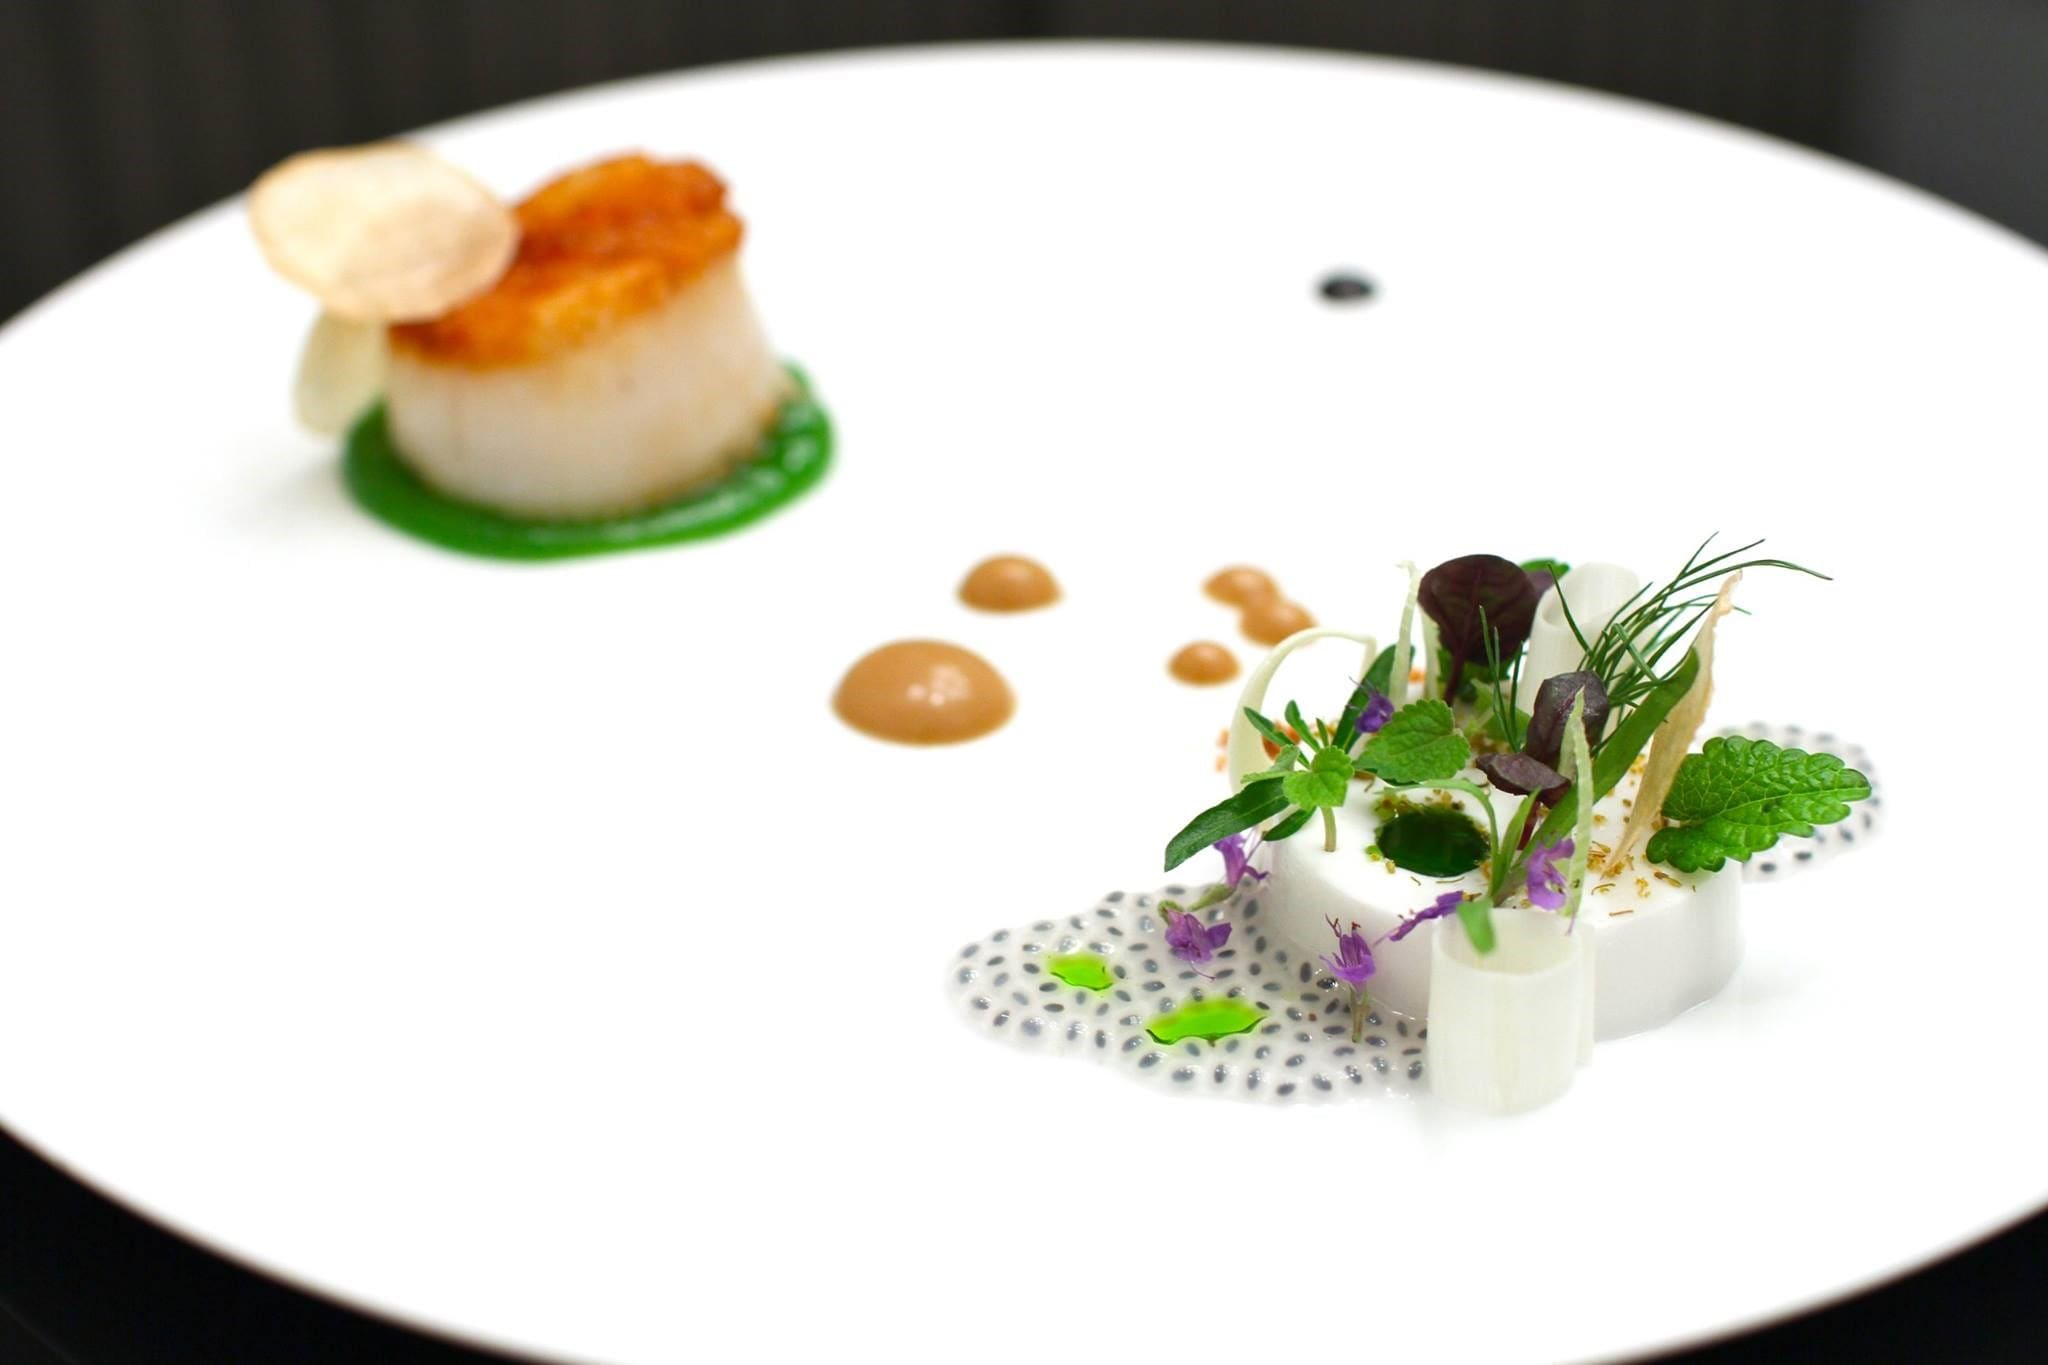 scallop-tamarind-smoke-flavors-of-licorice-grace